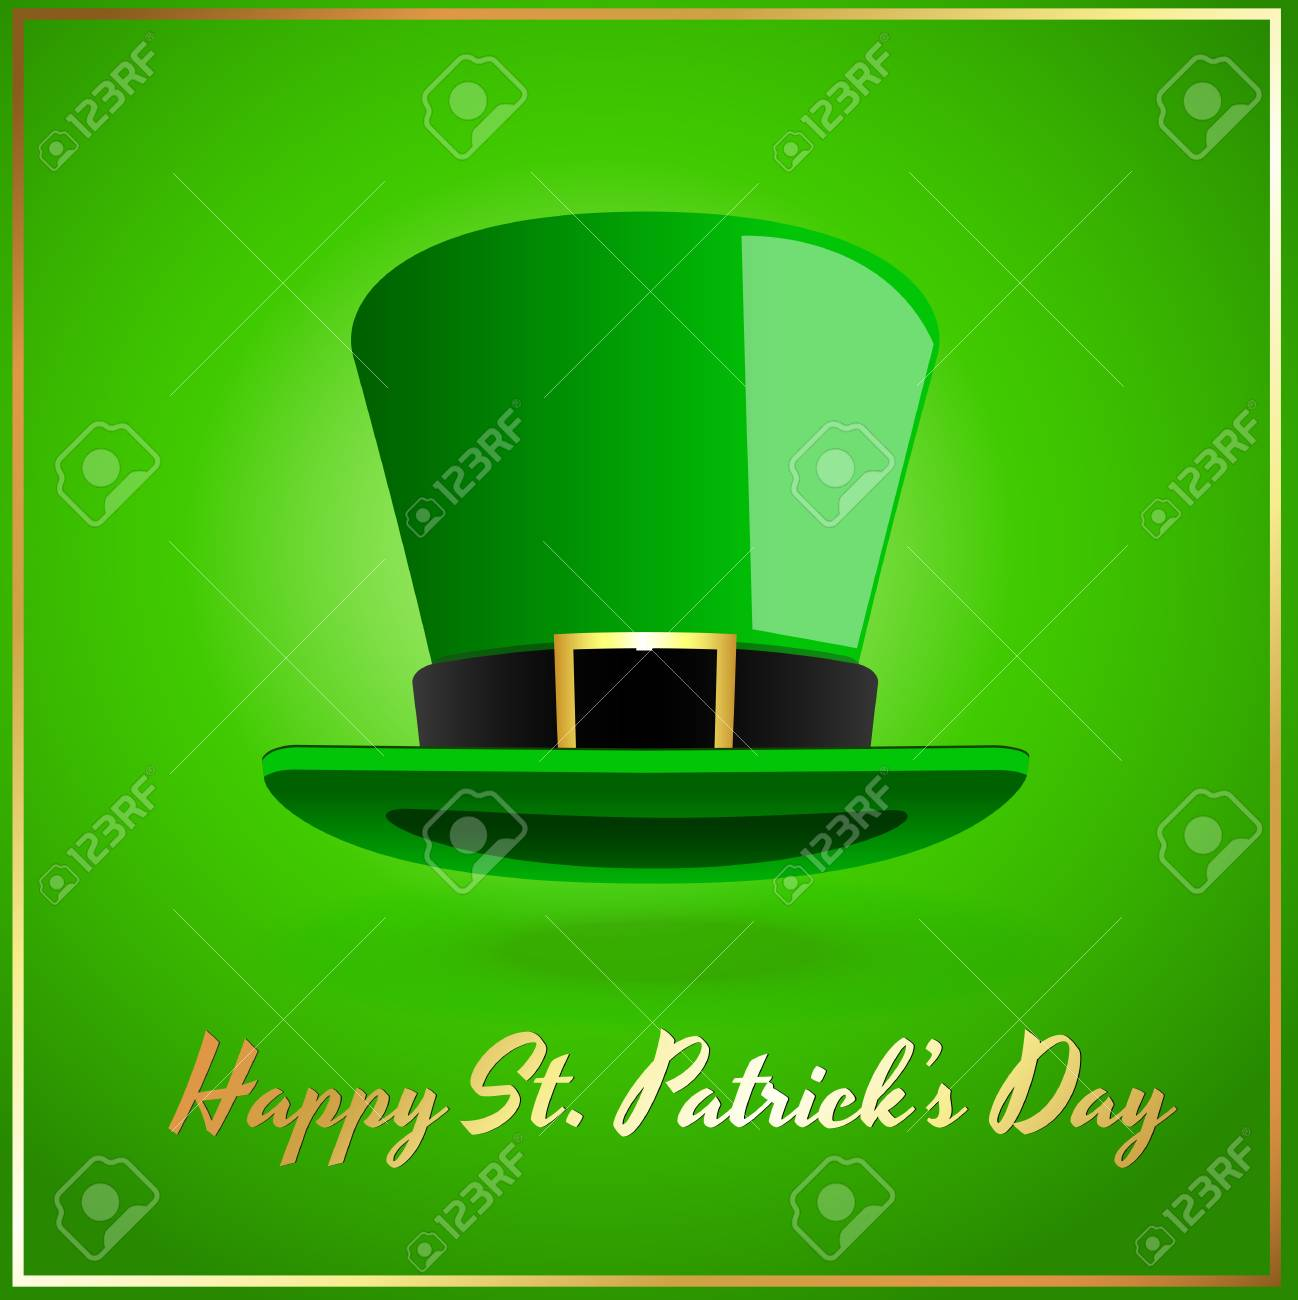 Green Leprechaun Hat Stock Vector - 13094321